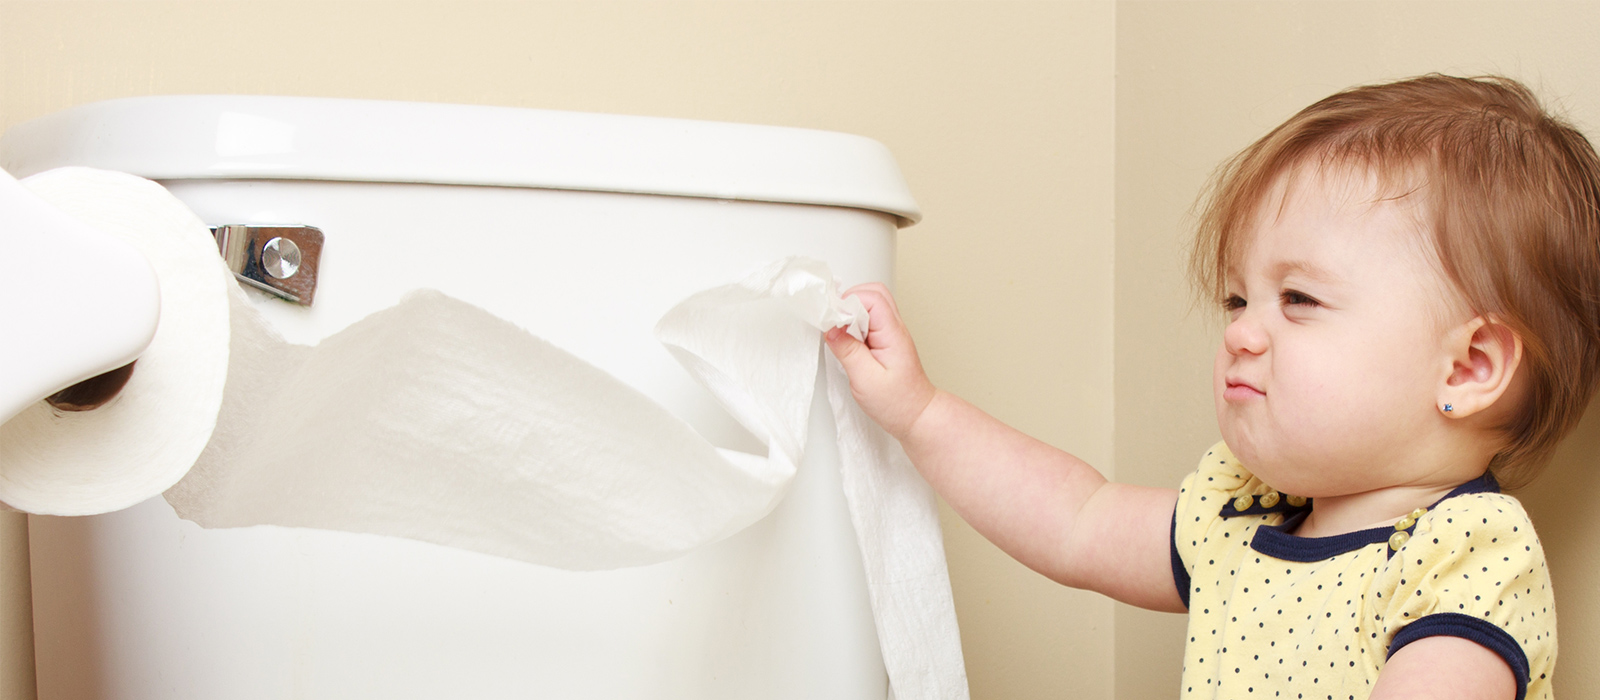 Baby-proofing your bathroom